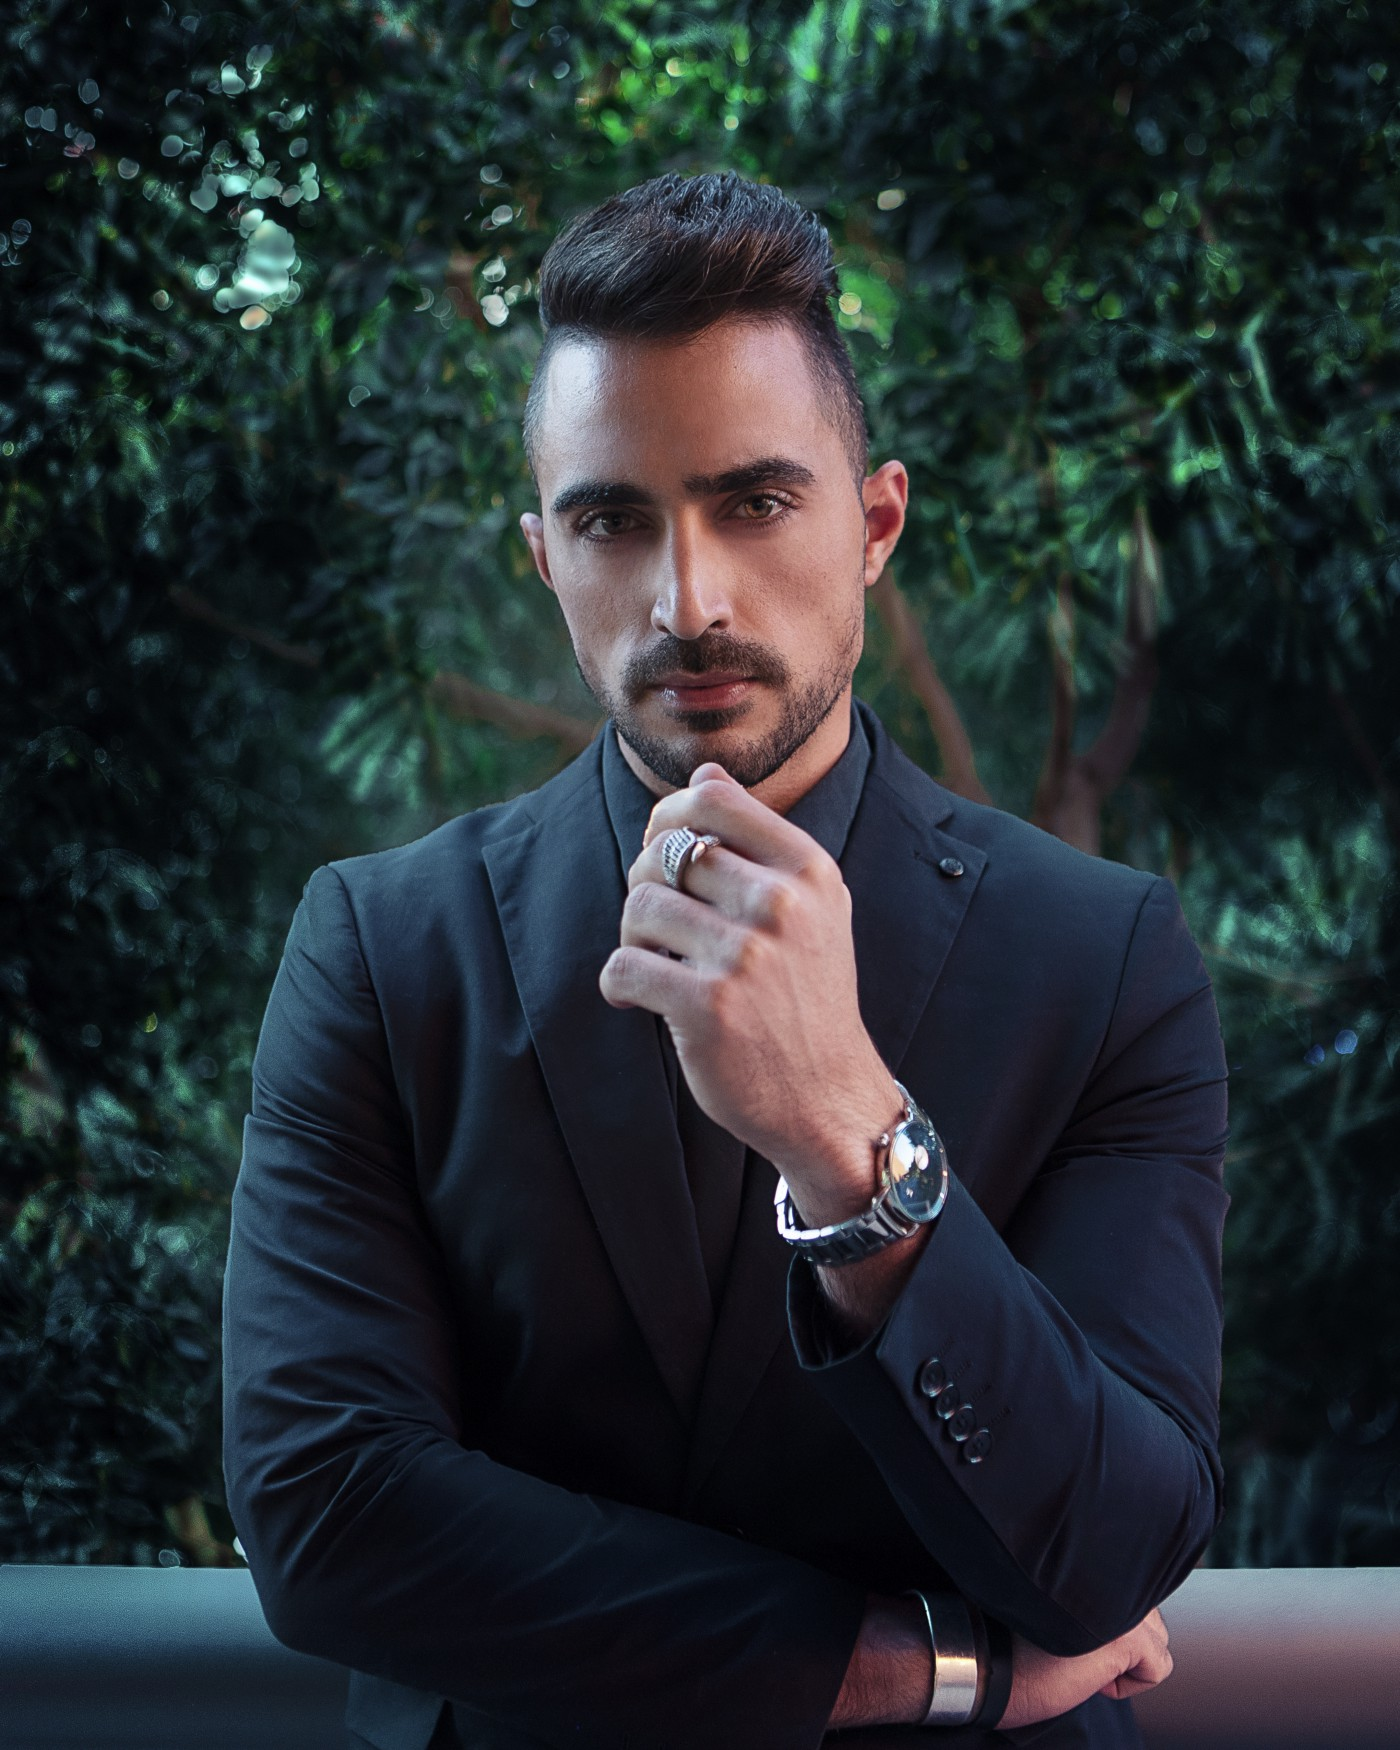 Sleek dressed male with side cuts hairstyle and trimmed beard, wearing blazer, watch, looking into camera determined.